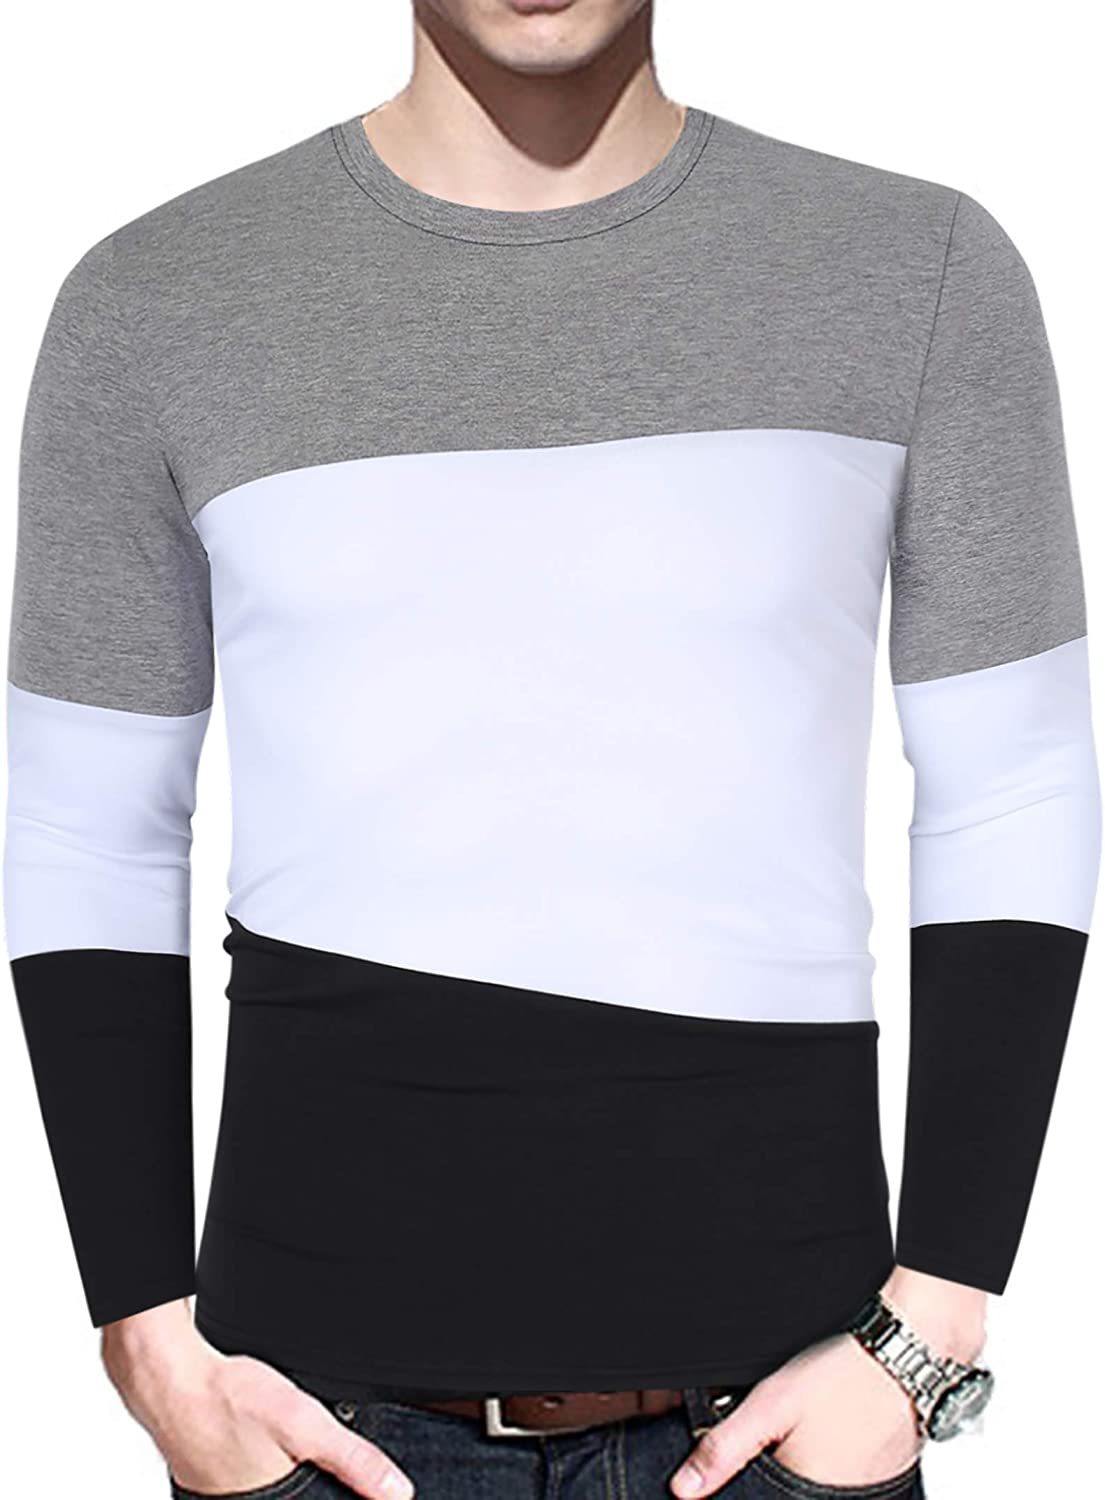 Yong Horse Mens Casual Stitching Tops Shirts Slim Fit Crew Neck Long Sleeve Athletic Basic Cotton T-Shirt